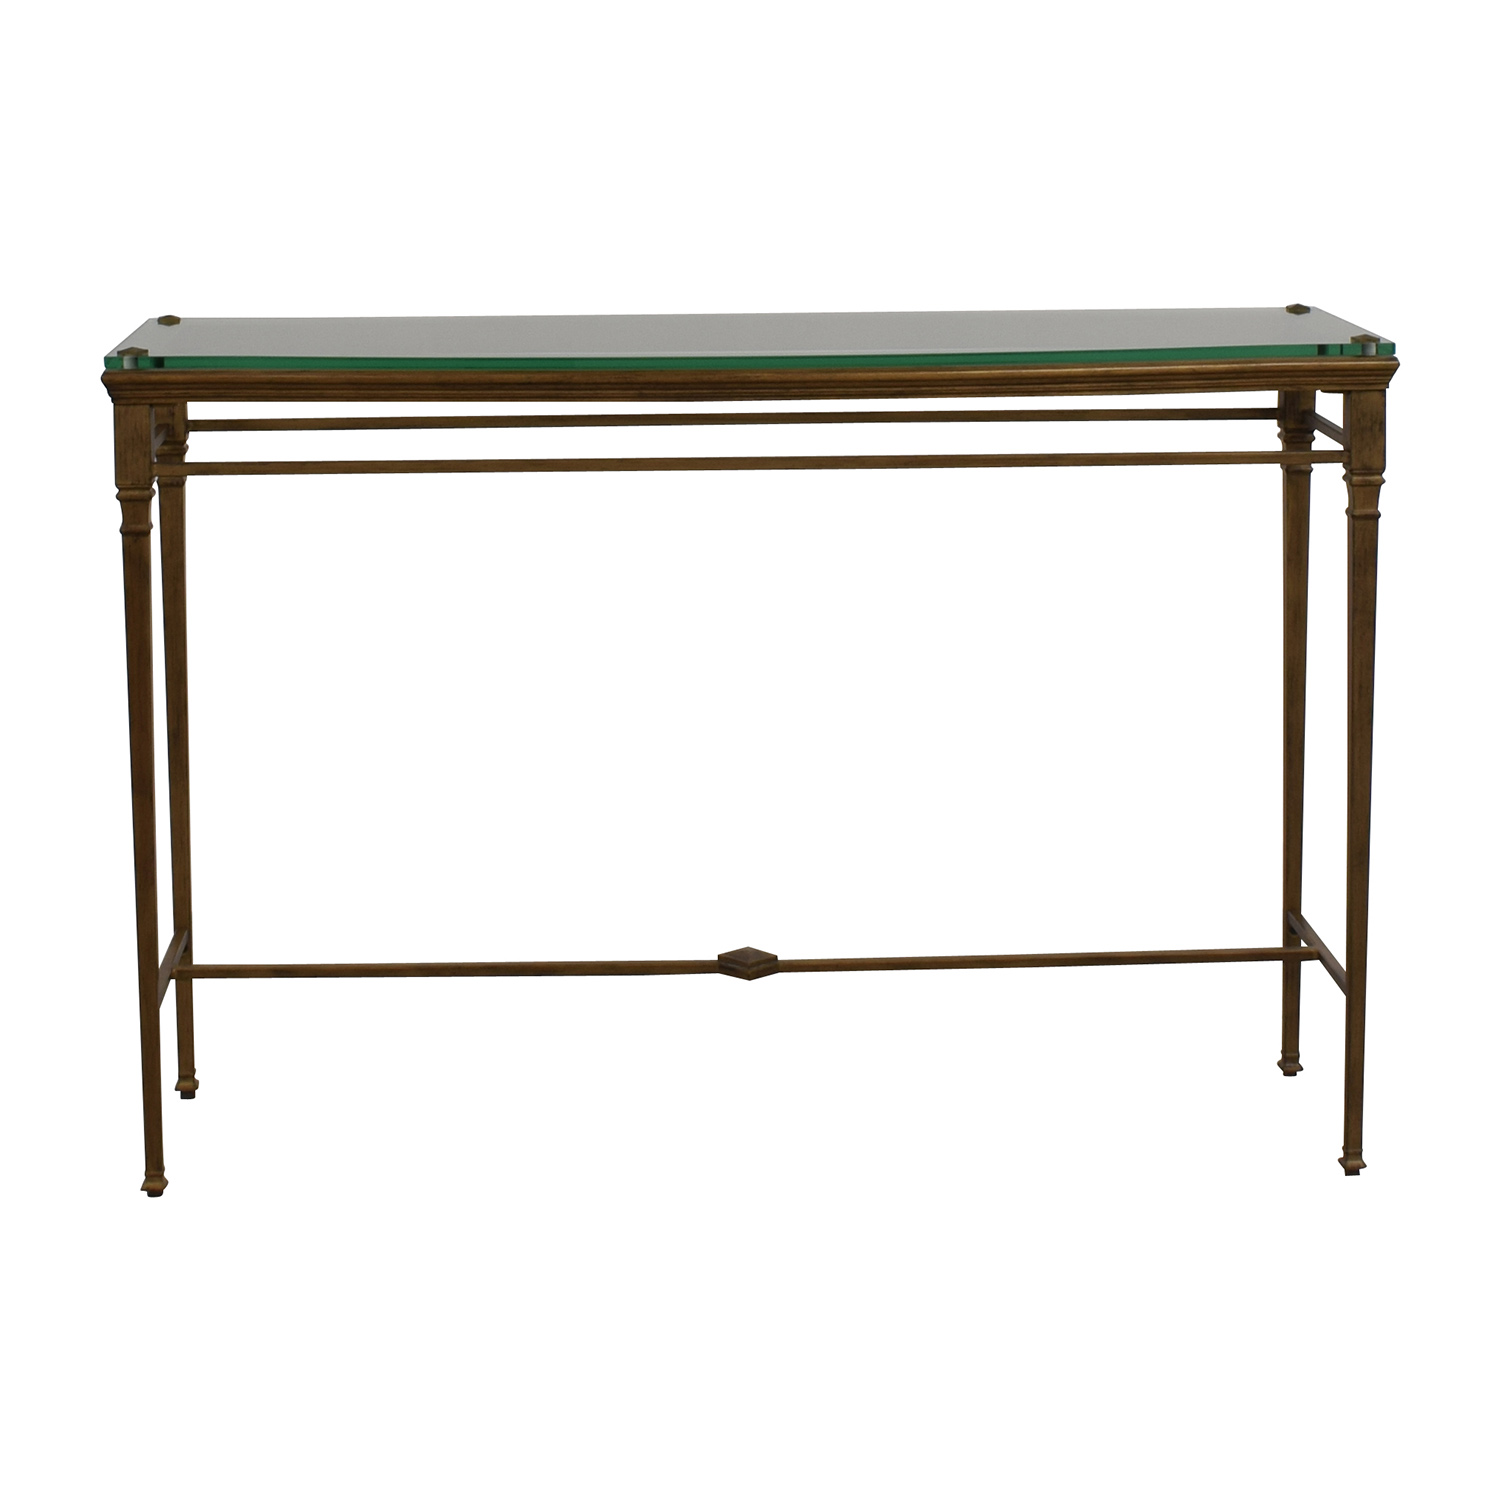 Pier 1 Pier 1 Foyer Metal and Glass Entry Table discount